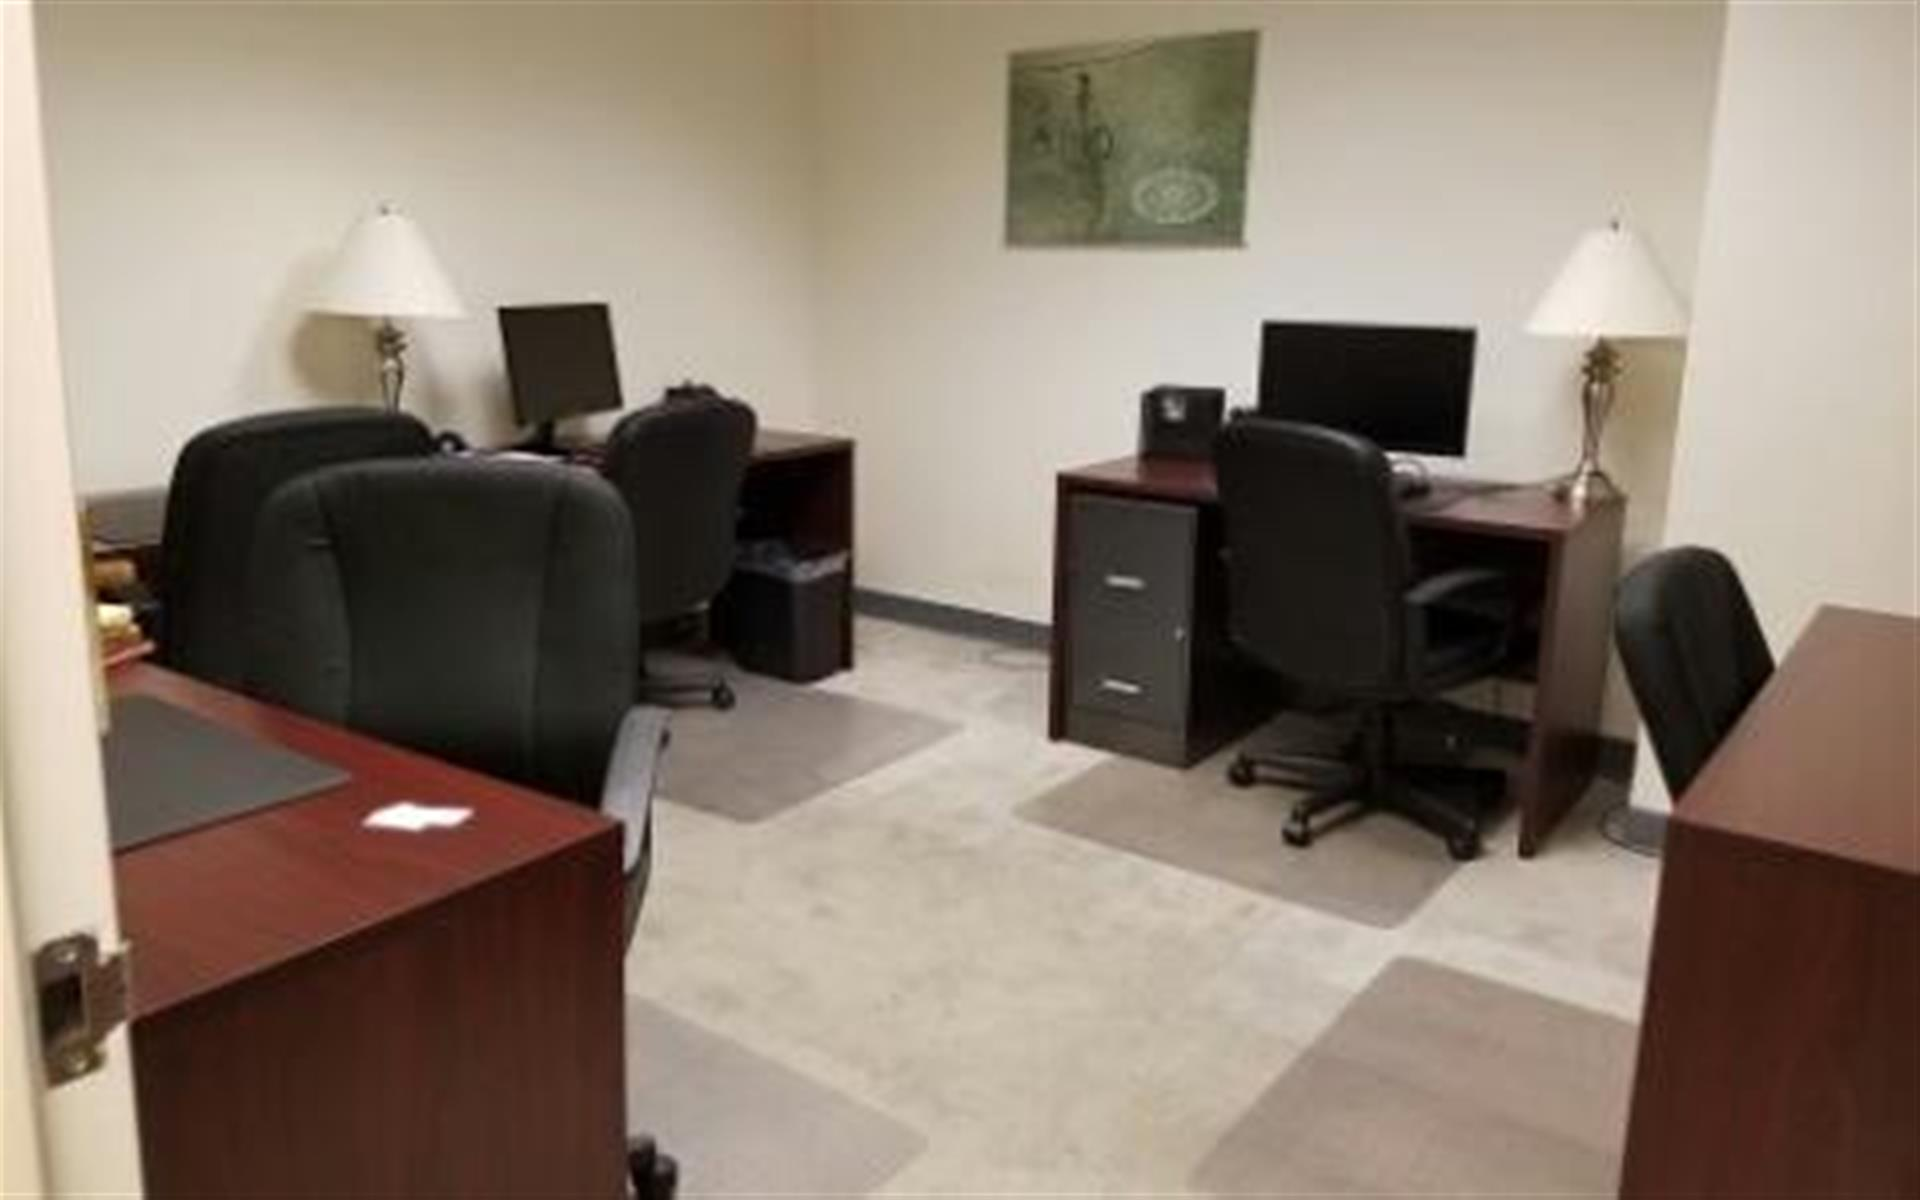 NYC Office Suites 708 (3rd Ave. & 44th) - Flexible Private Office Space 708 for 4